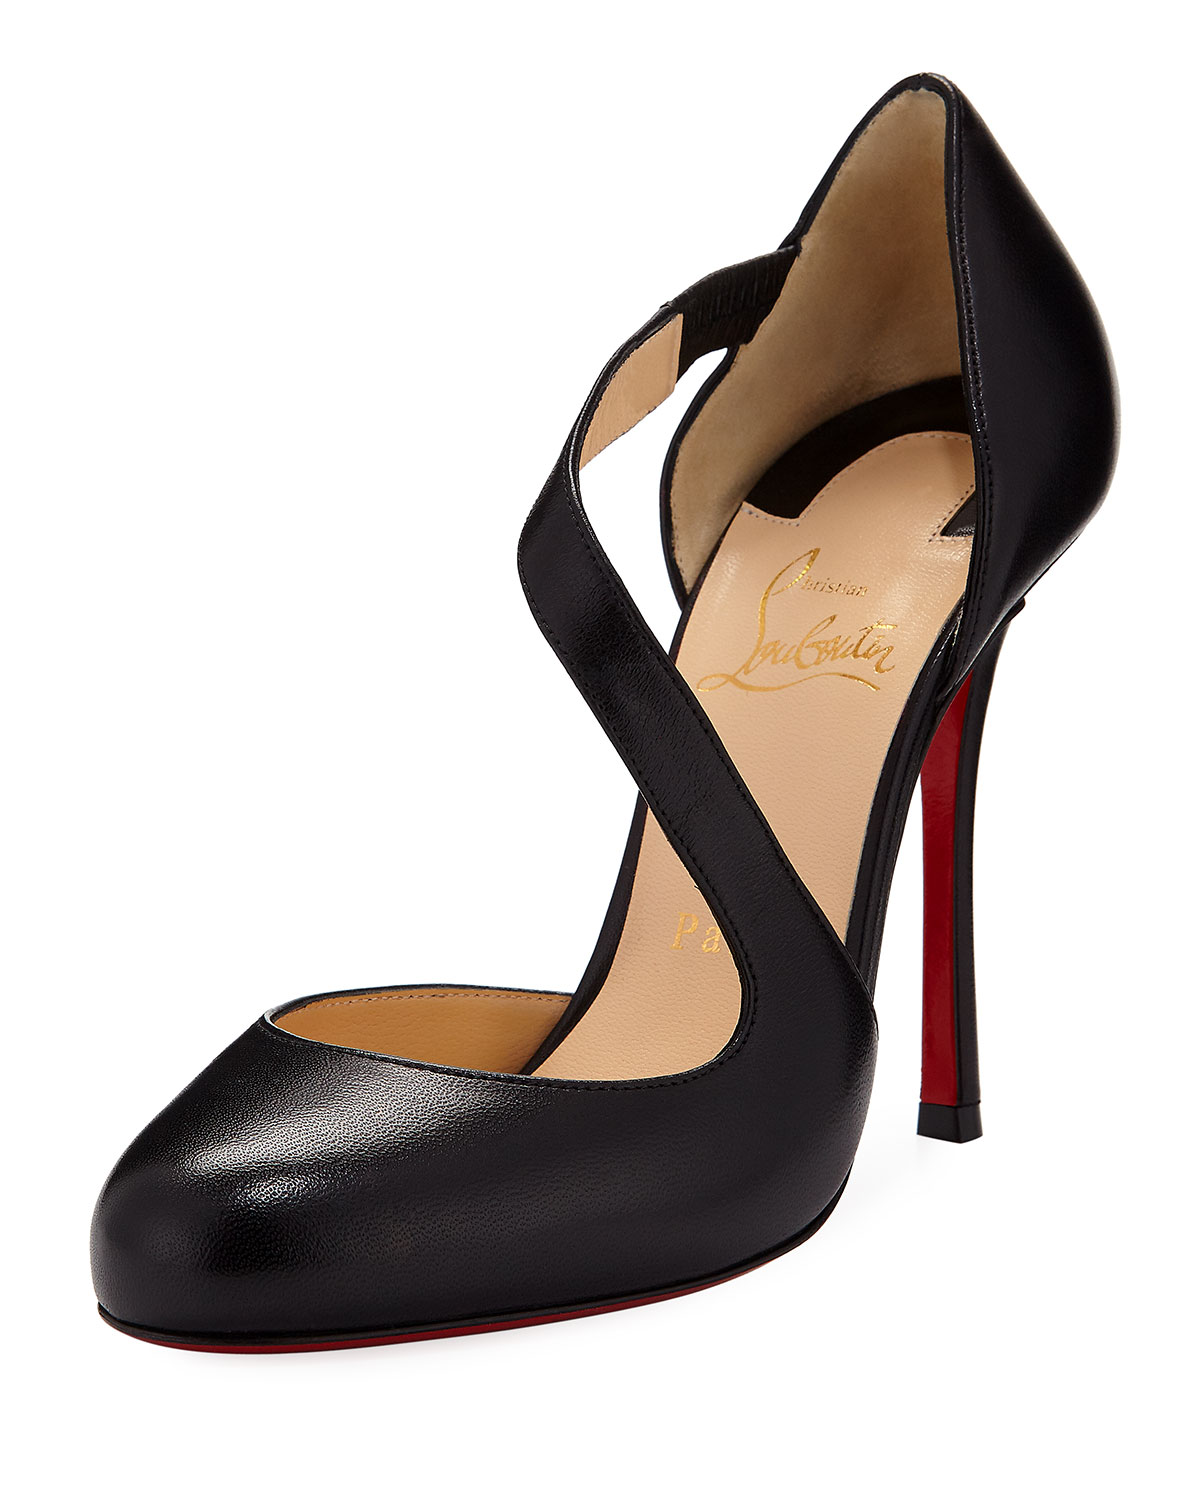 detailed look 28450 a6cf9 Decalcoco Asymmetric Red Sole Pump